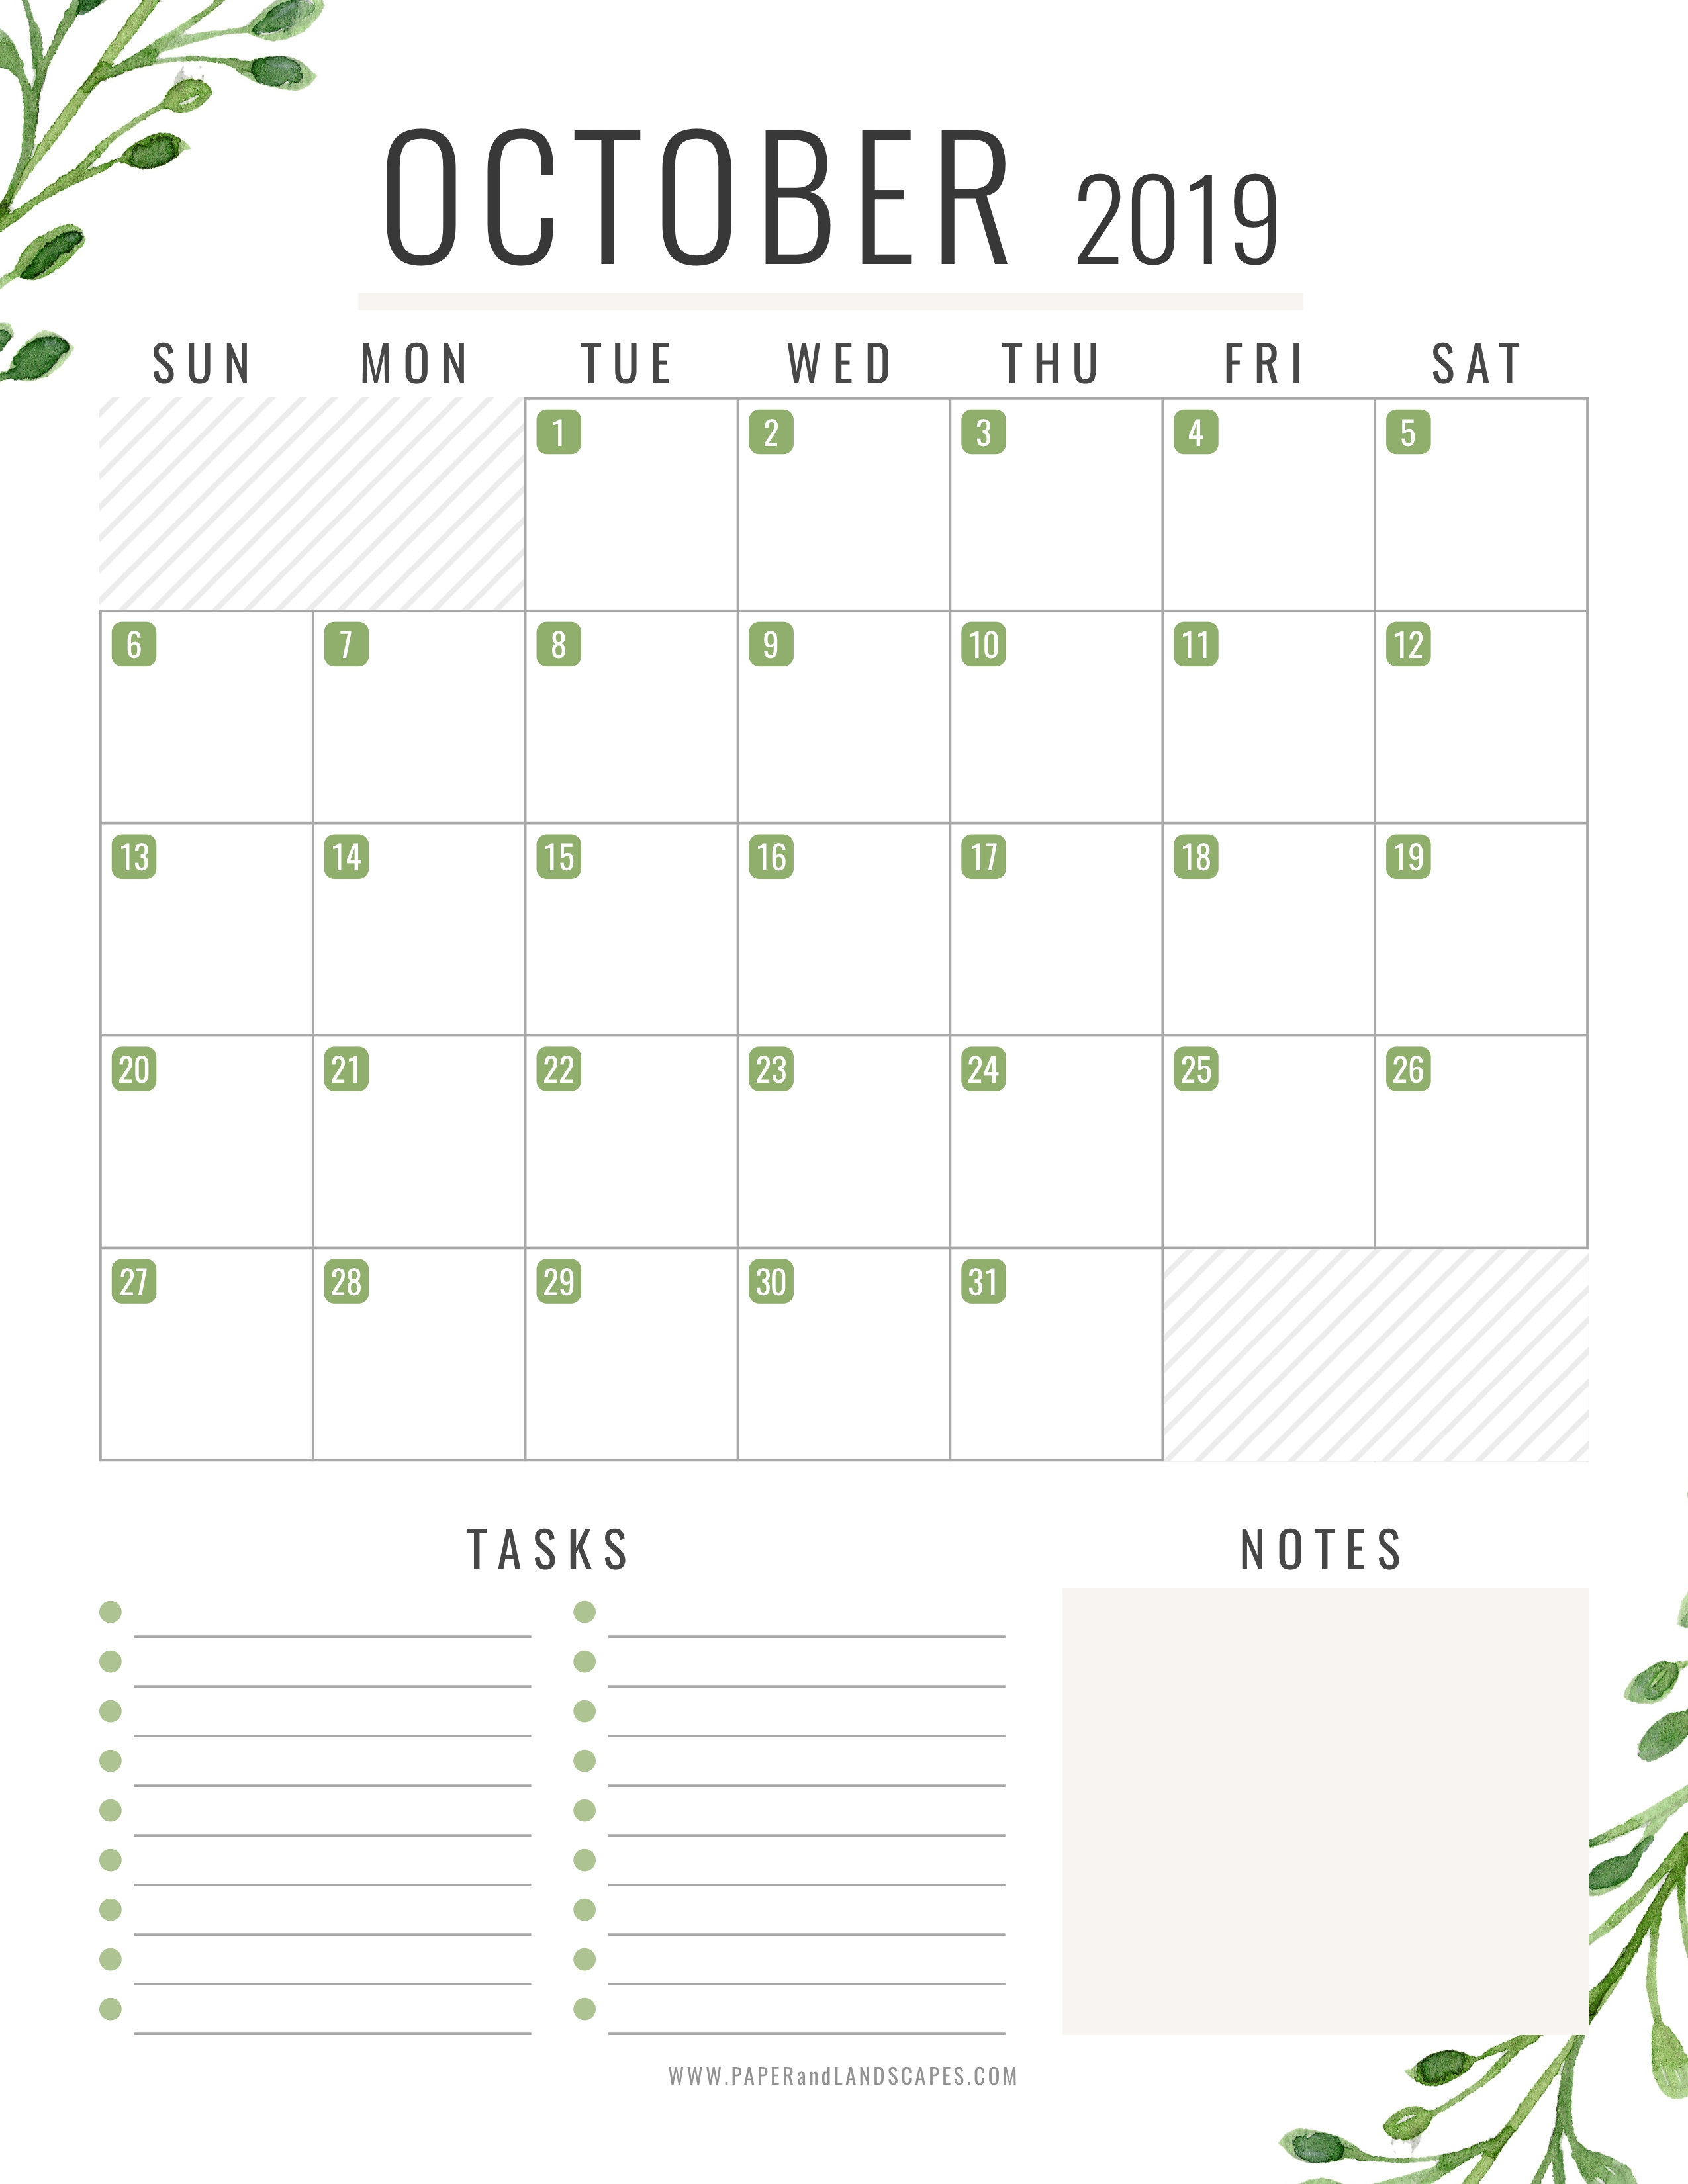 10 October 2019 - Free Printable Calendar - Paper And